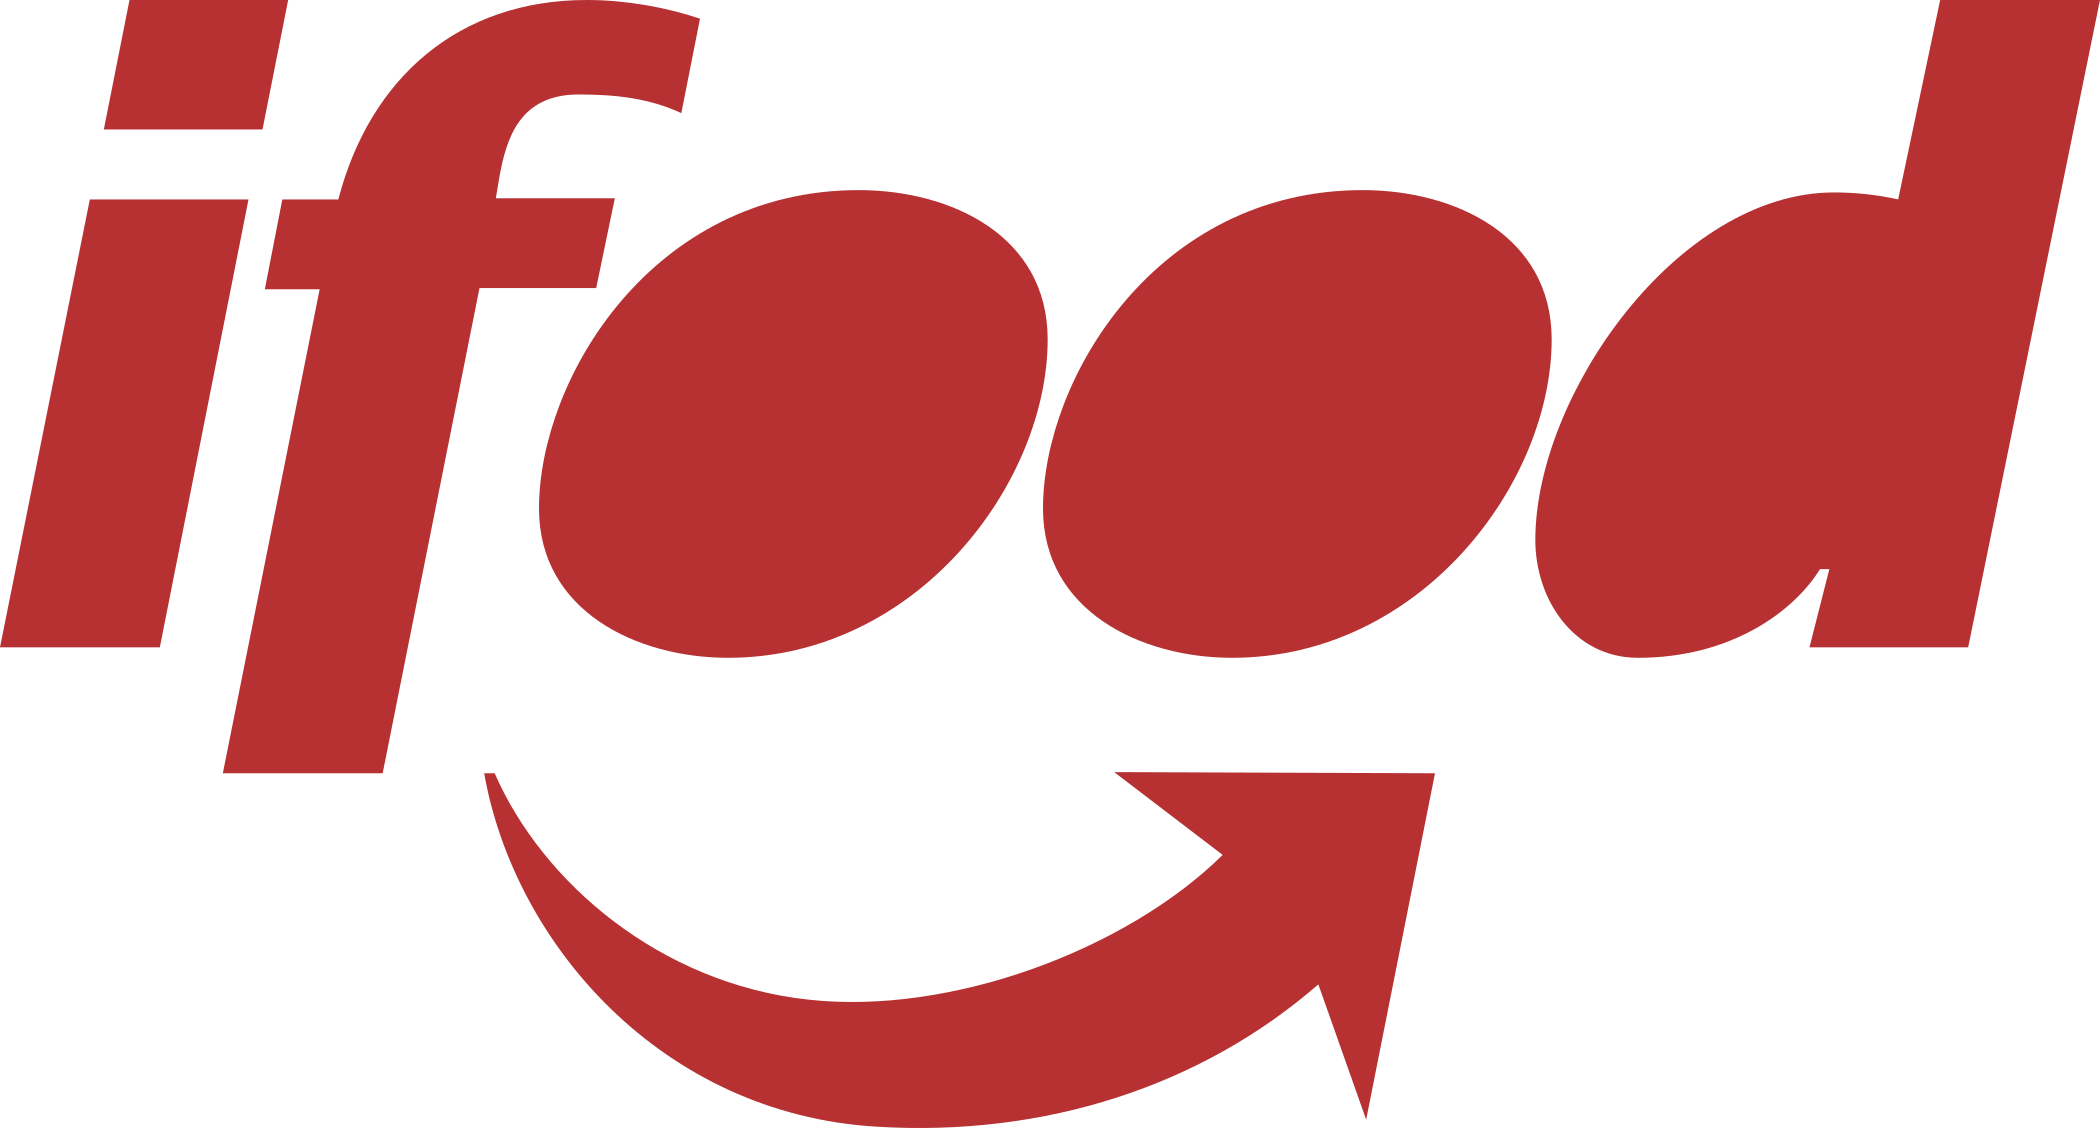 ifood logo 2 - ifood Logo